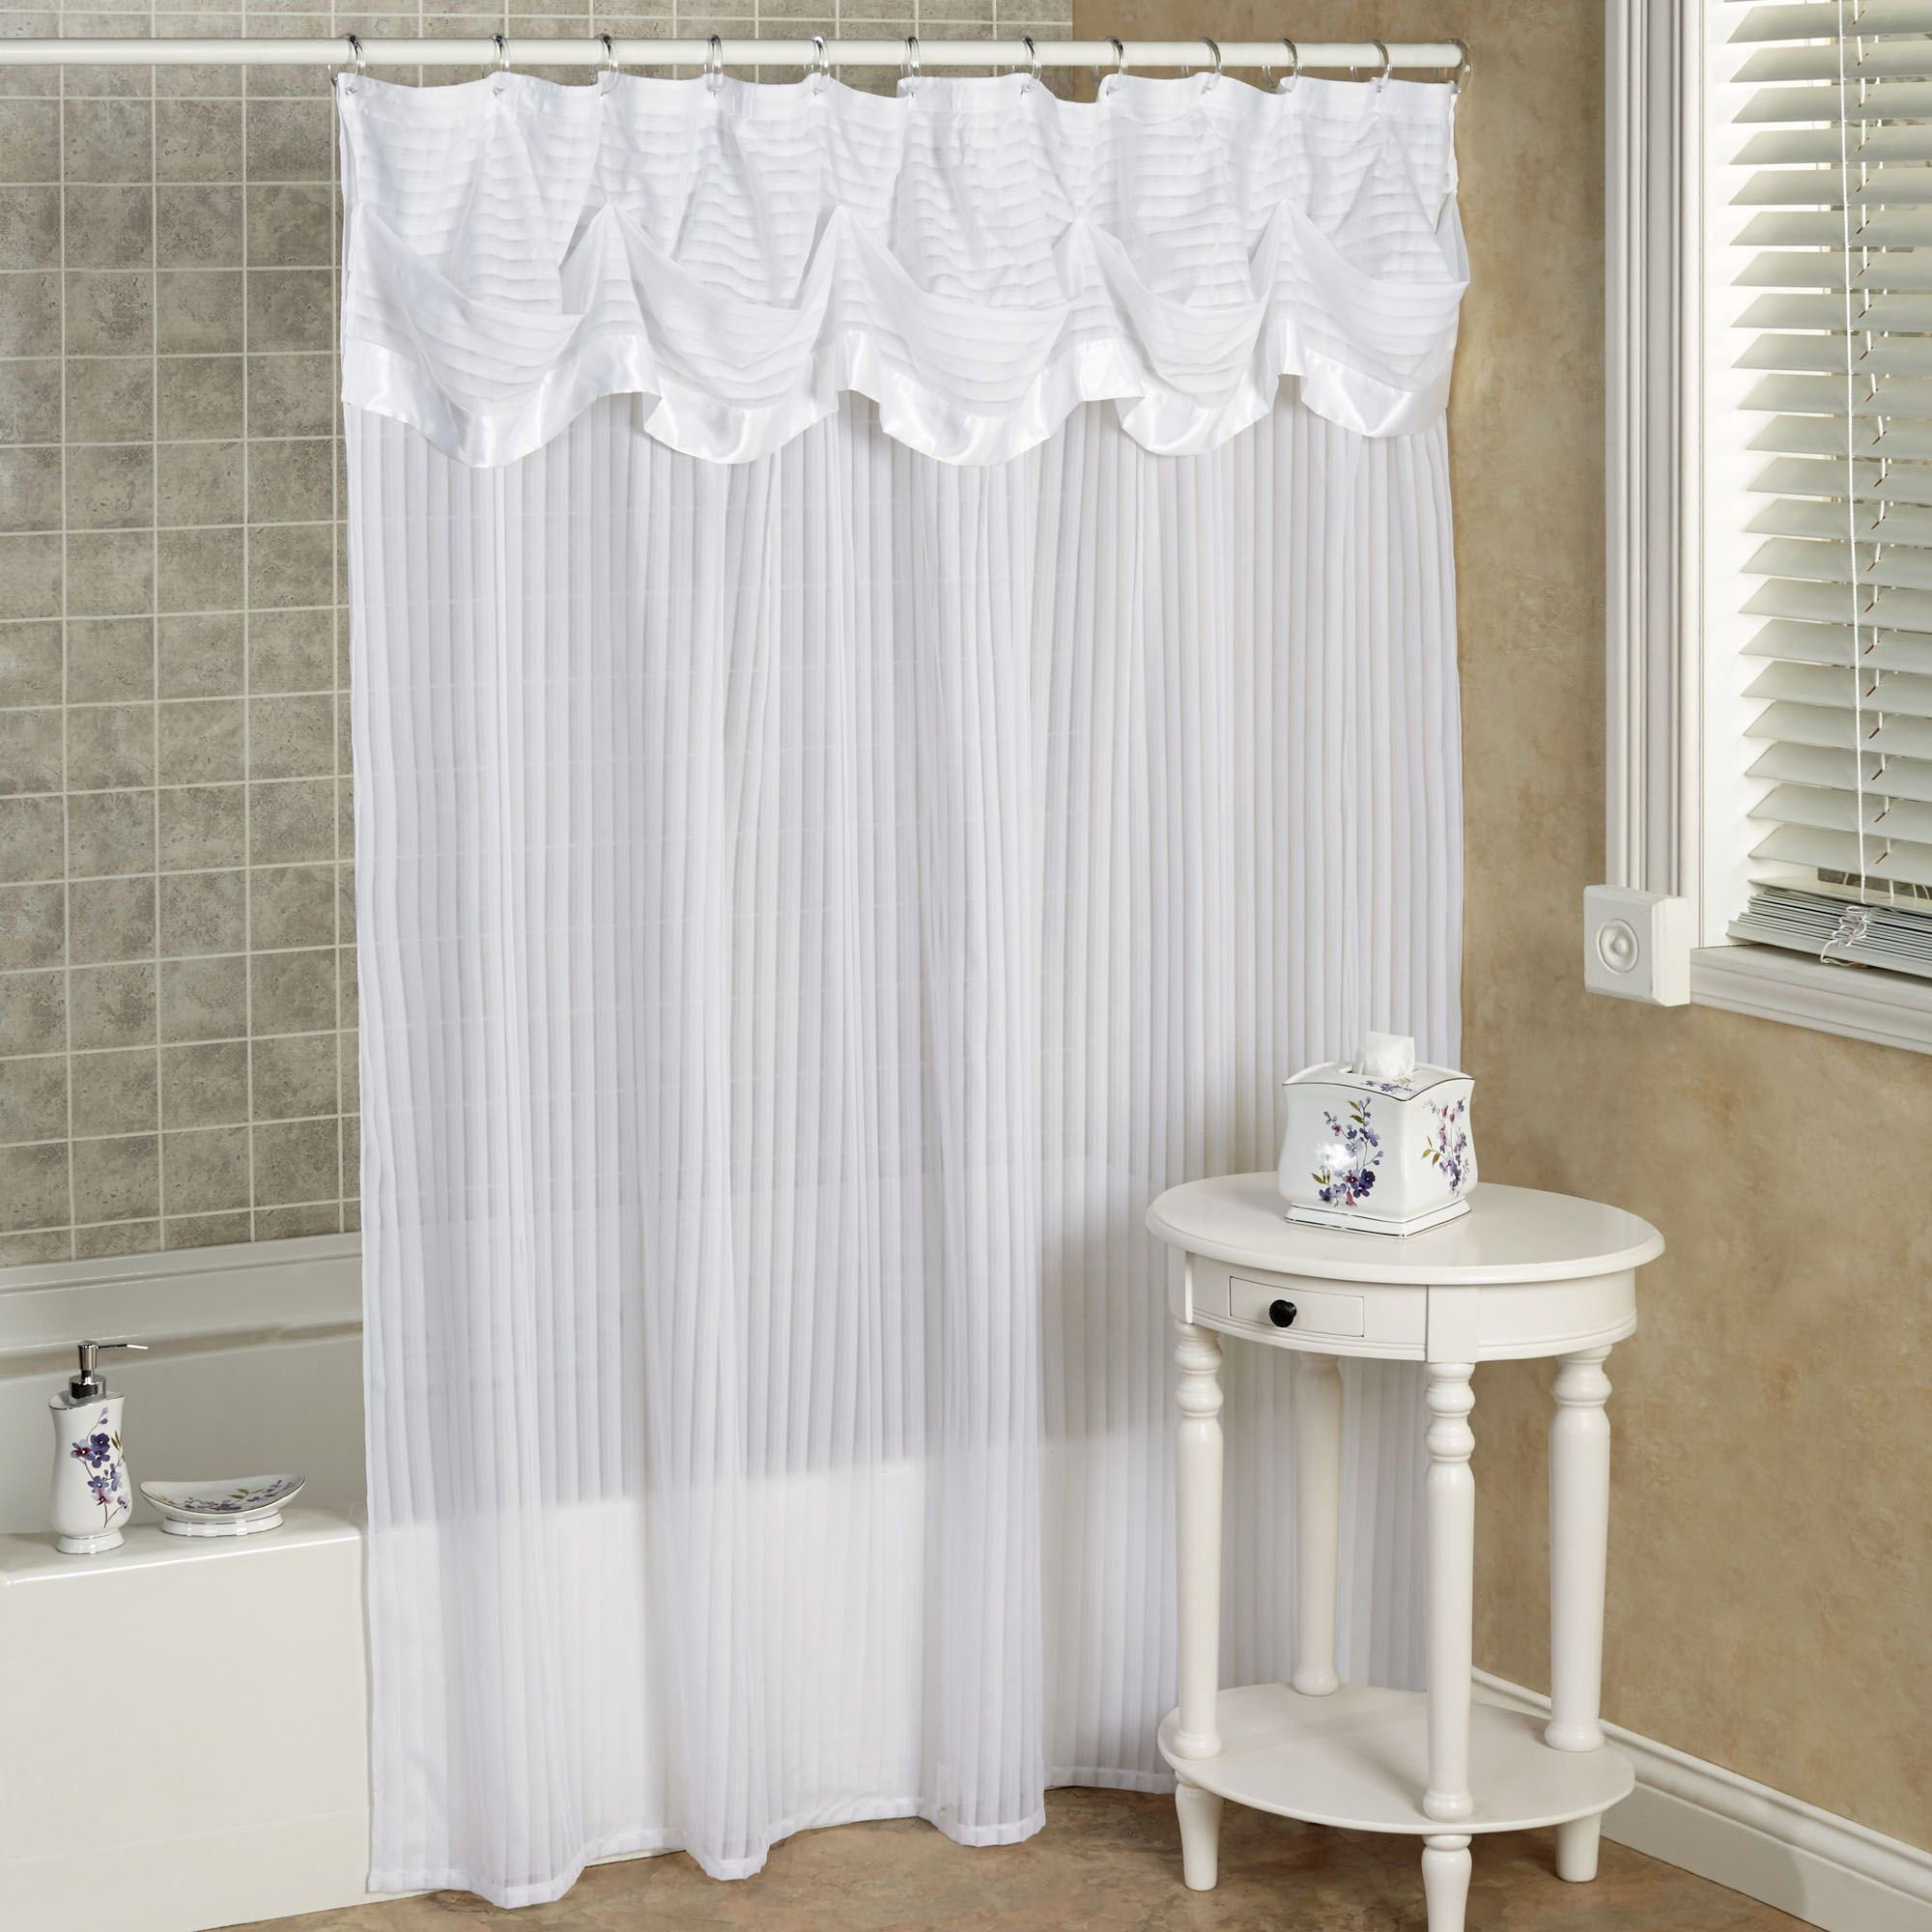 Nimbus Stripe Shower Curtain 70 X 72 Click To Expand